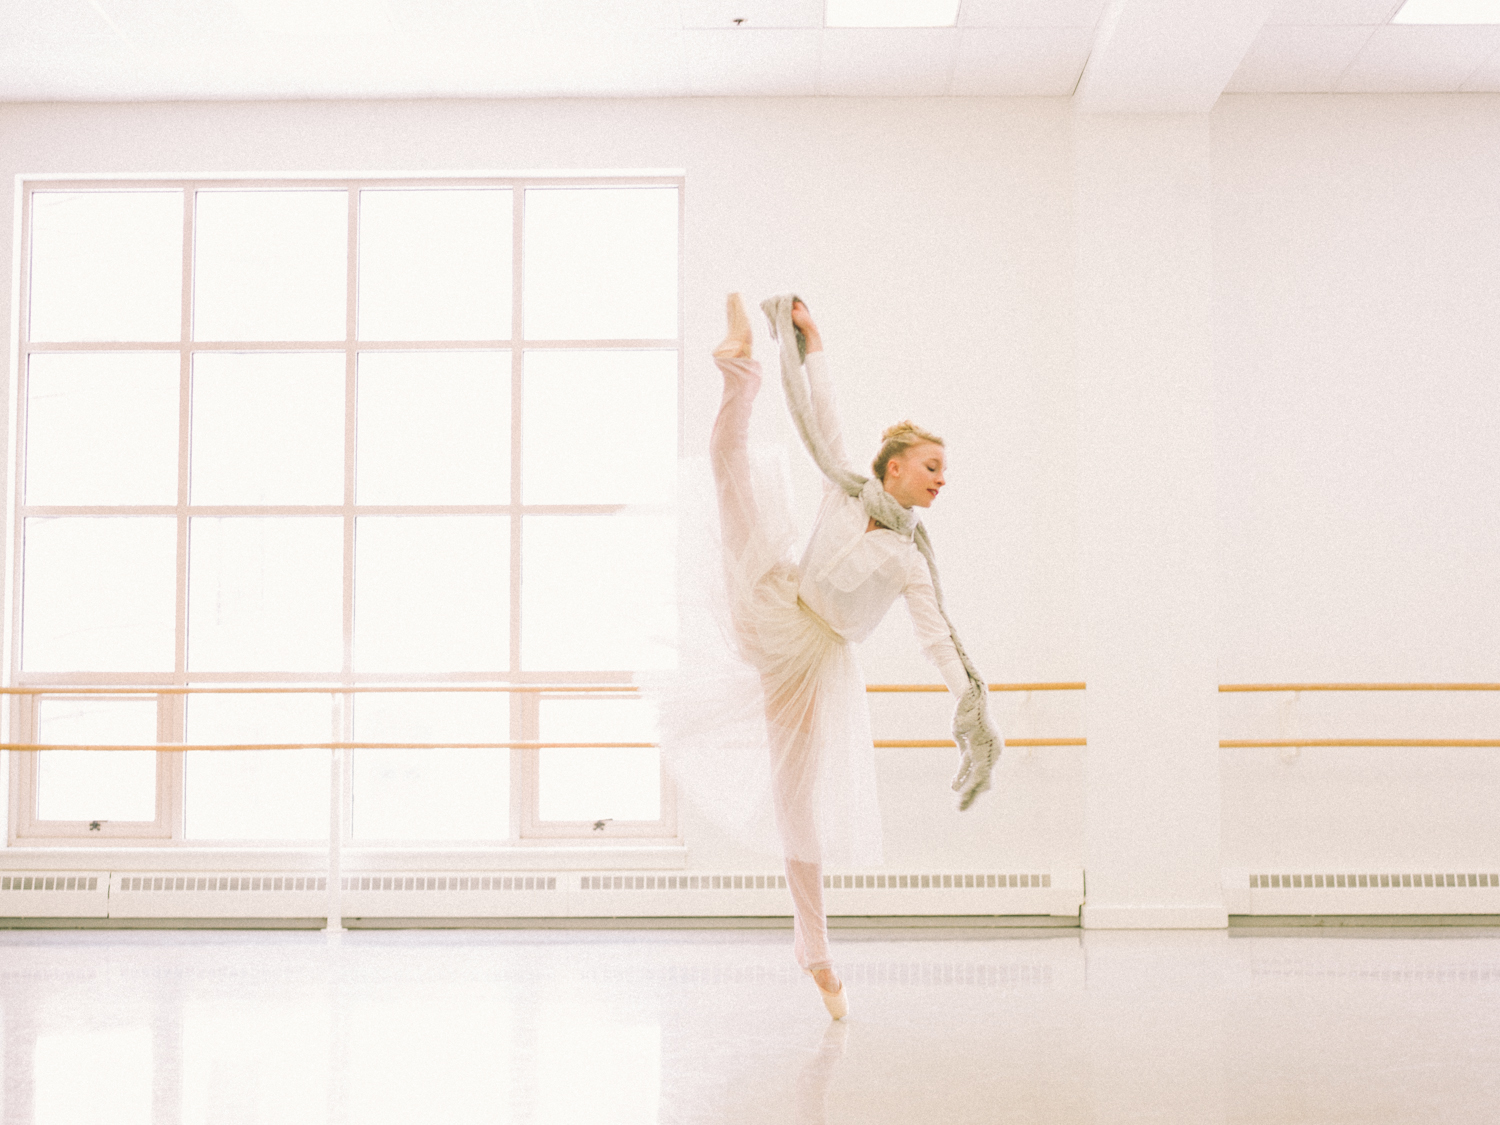 The Whole Dancer Program Questions – Answered